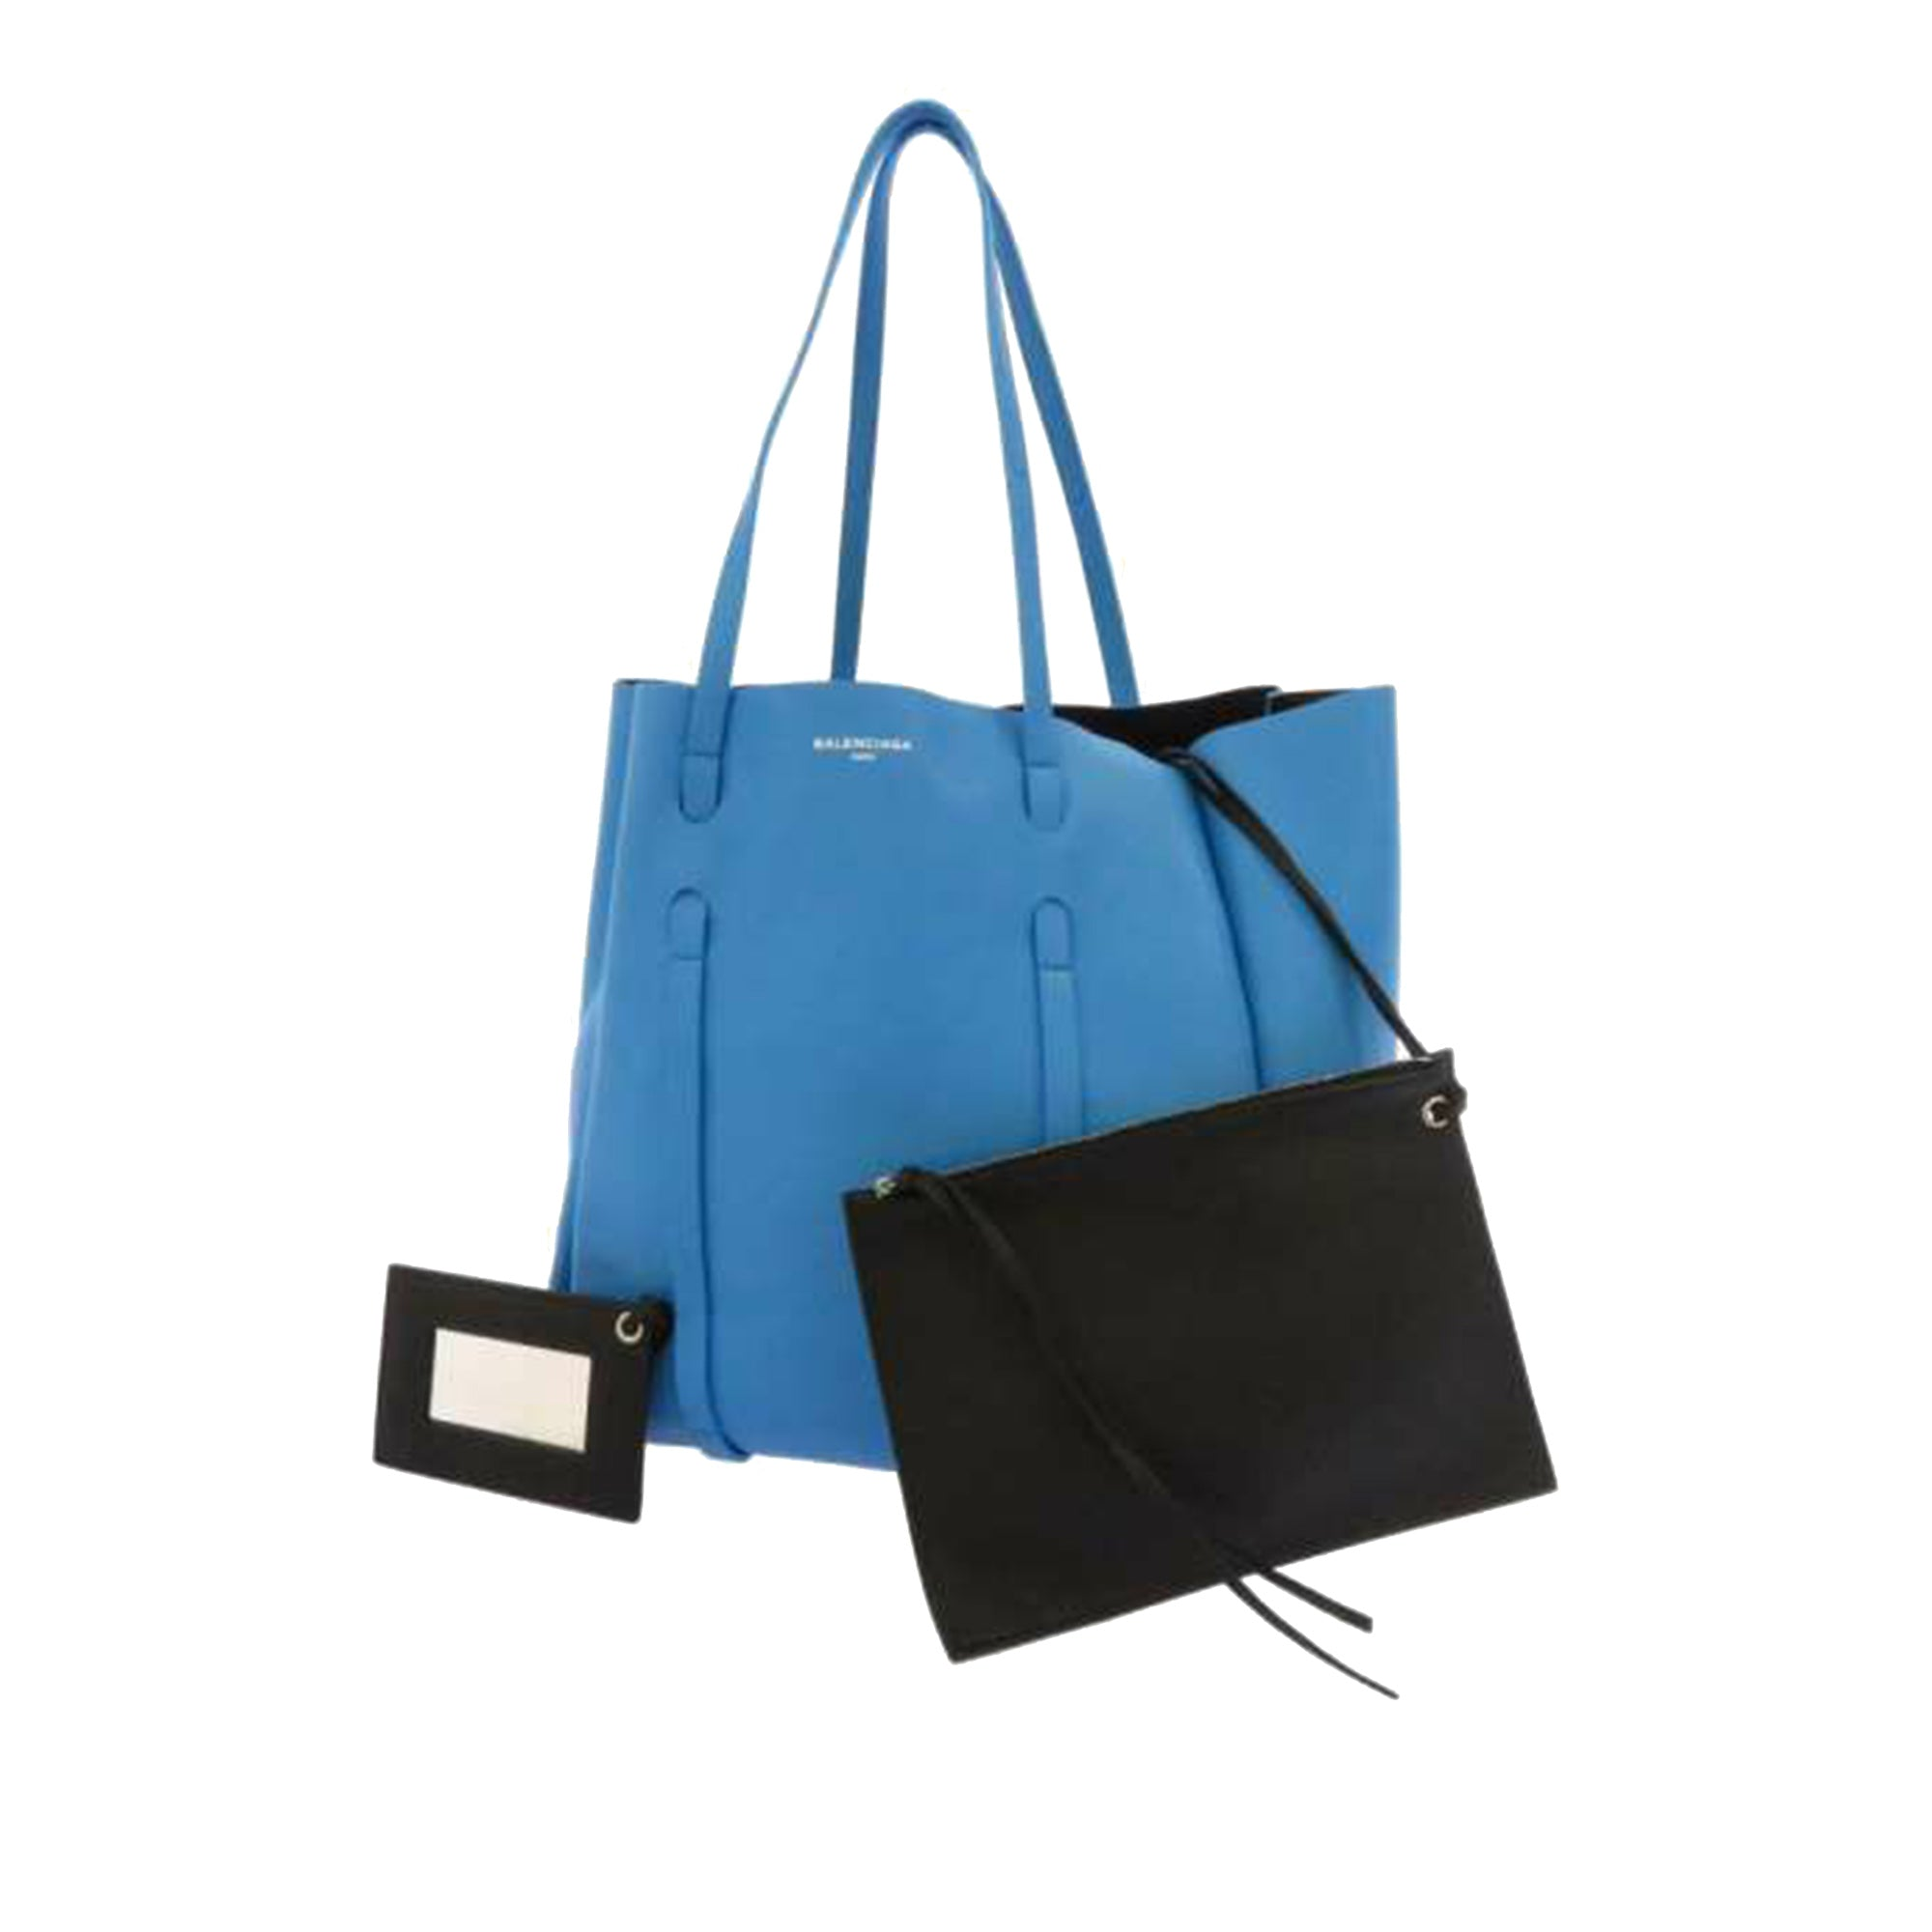 Balenciaga Blue S Everyday Leather Tote